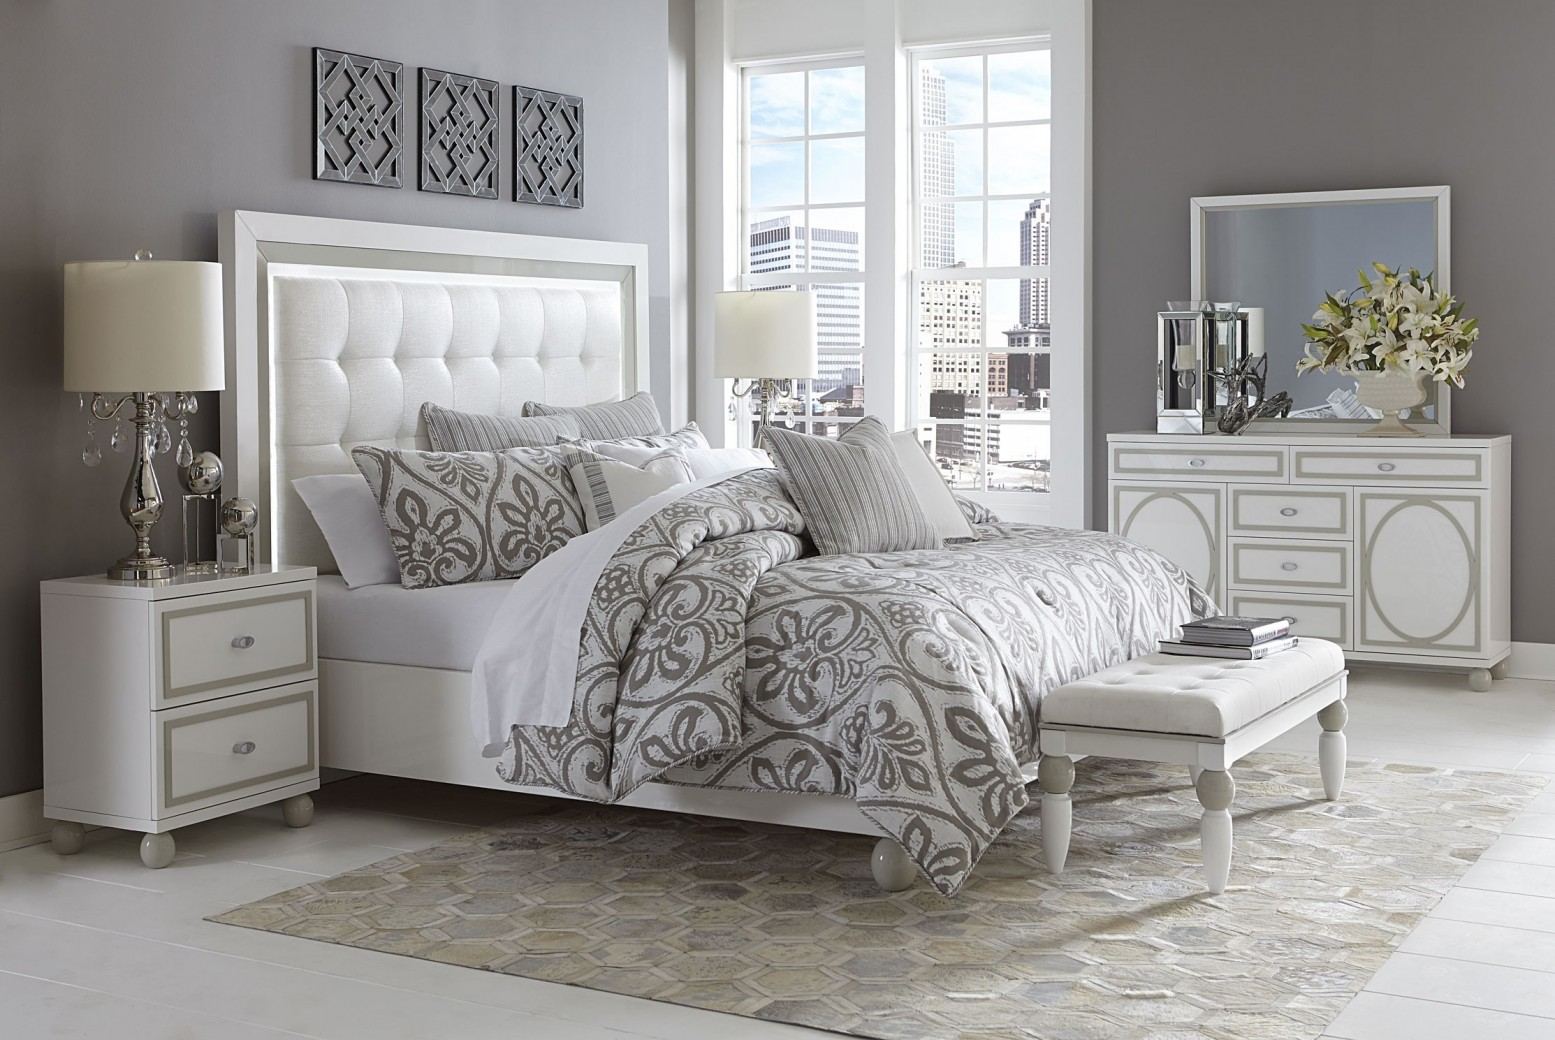 Sky Tower Bedroom Set White Cloud Cal king